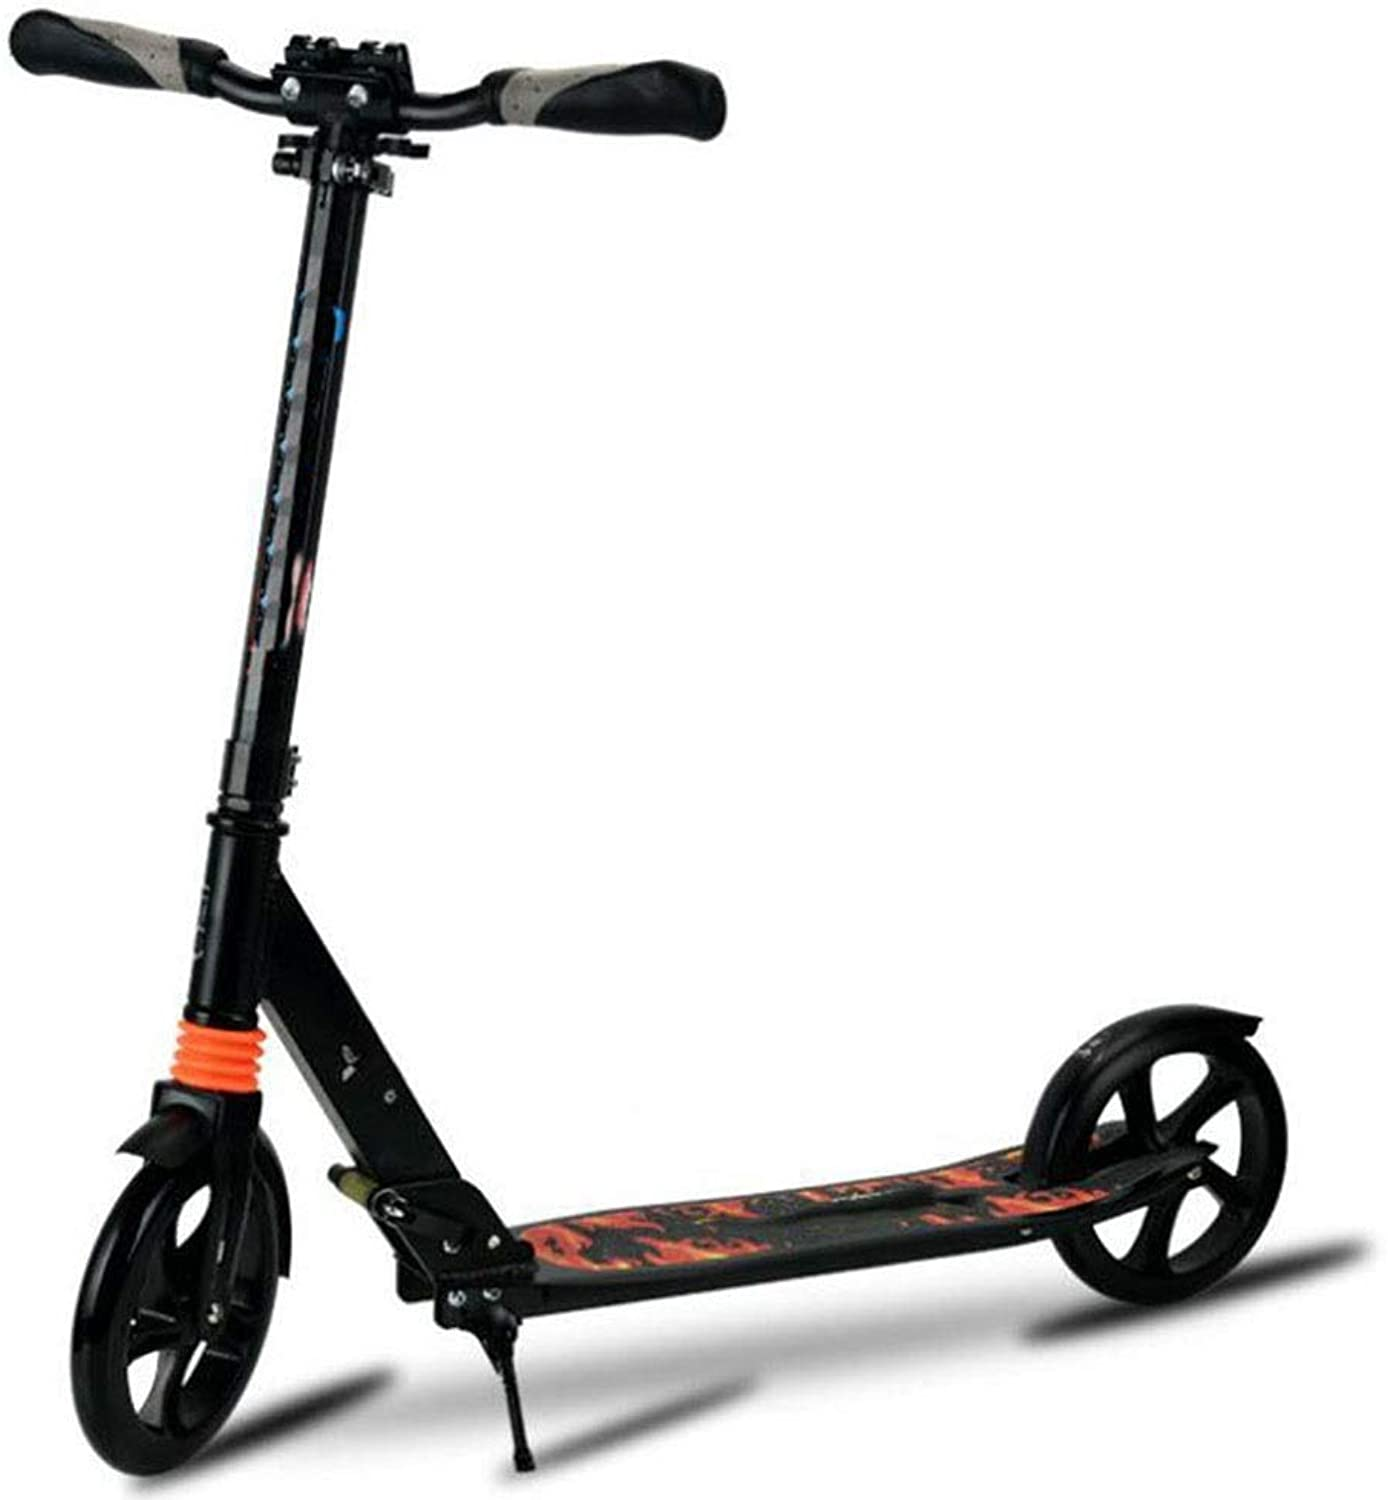 Two-Wheeled Scooter,Adult Adolescent Easy Folding Kicker, Durable Double Shock-Absorbing City Scooter for 100kg